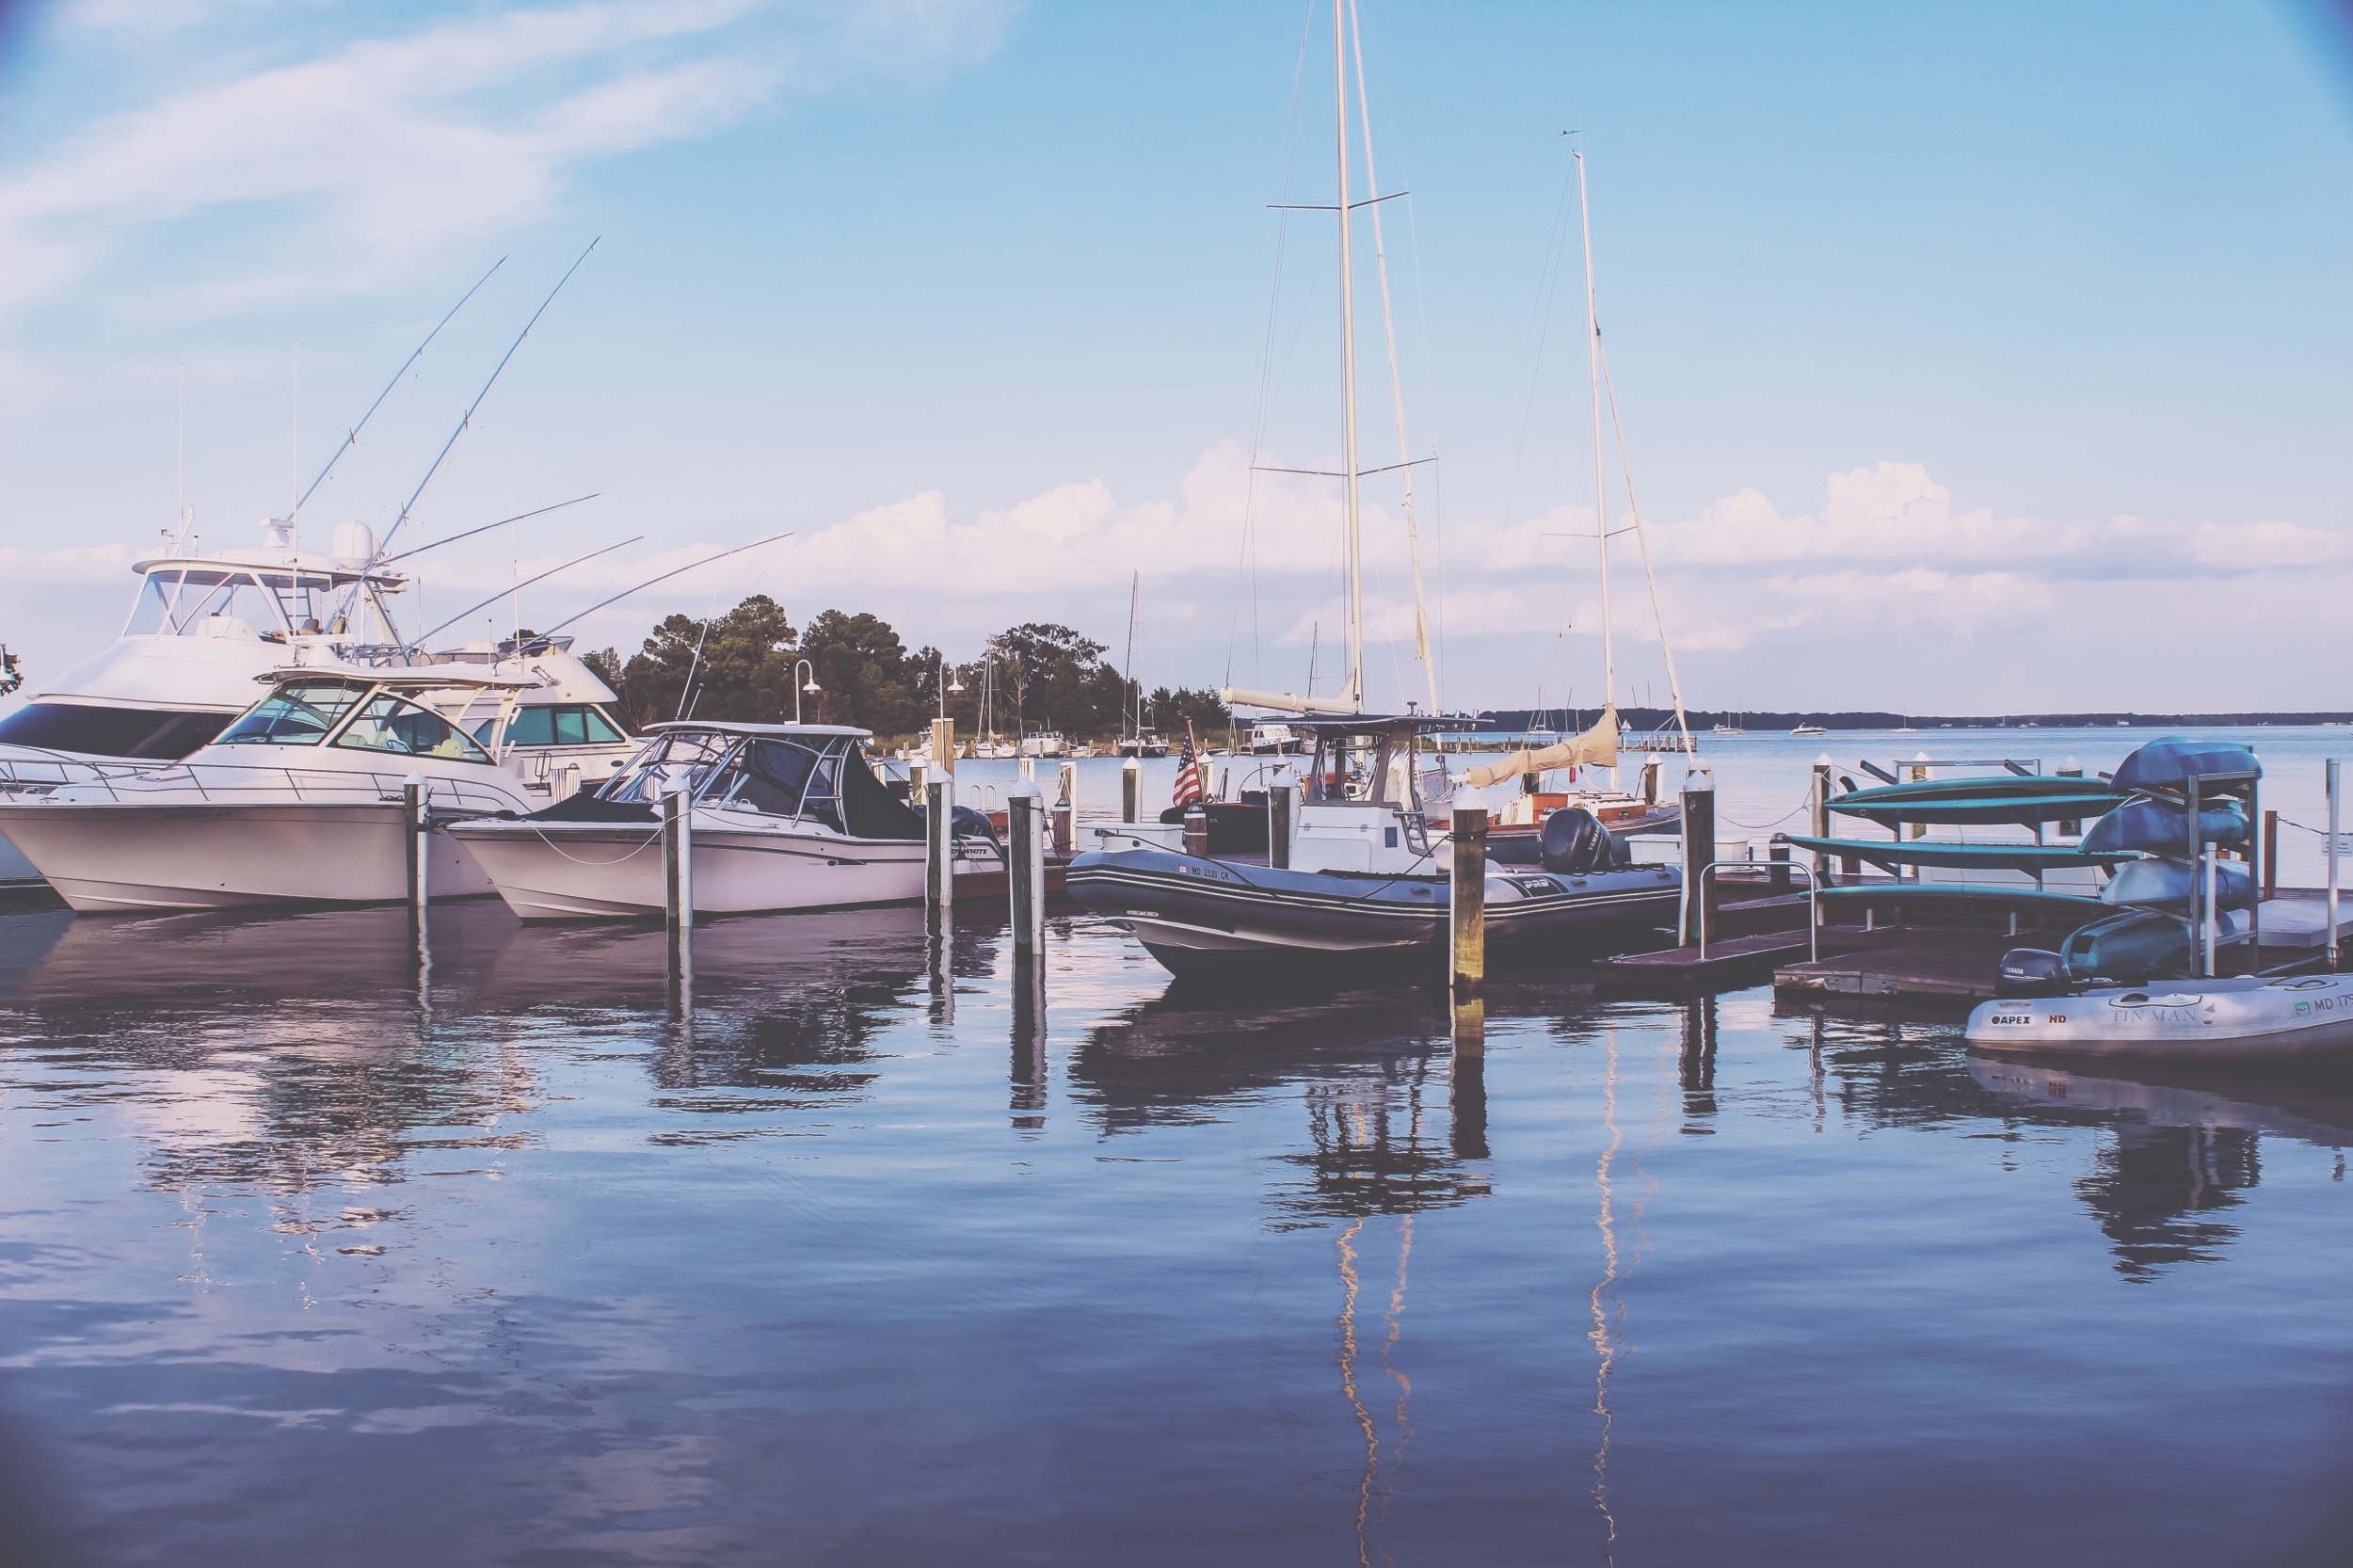 R and R Travel Guide: The Chesapeake Bay - At Tilghman Island and St. Michael's Island